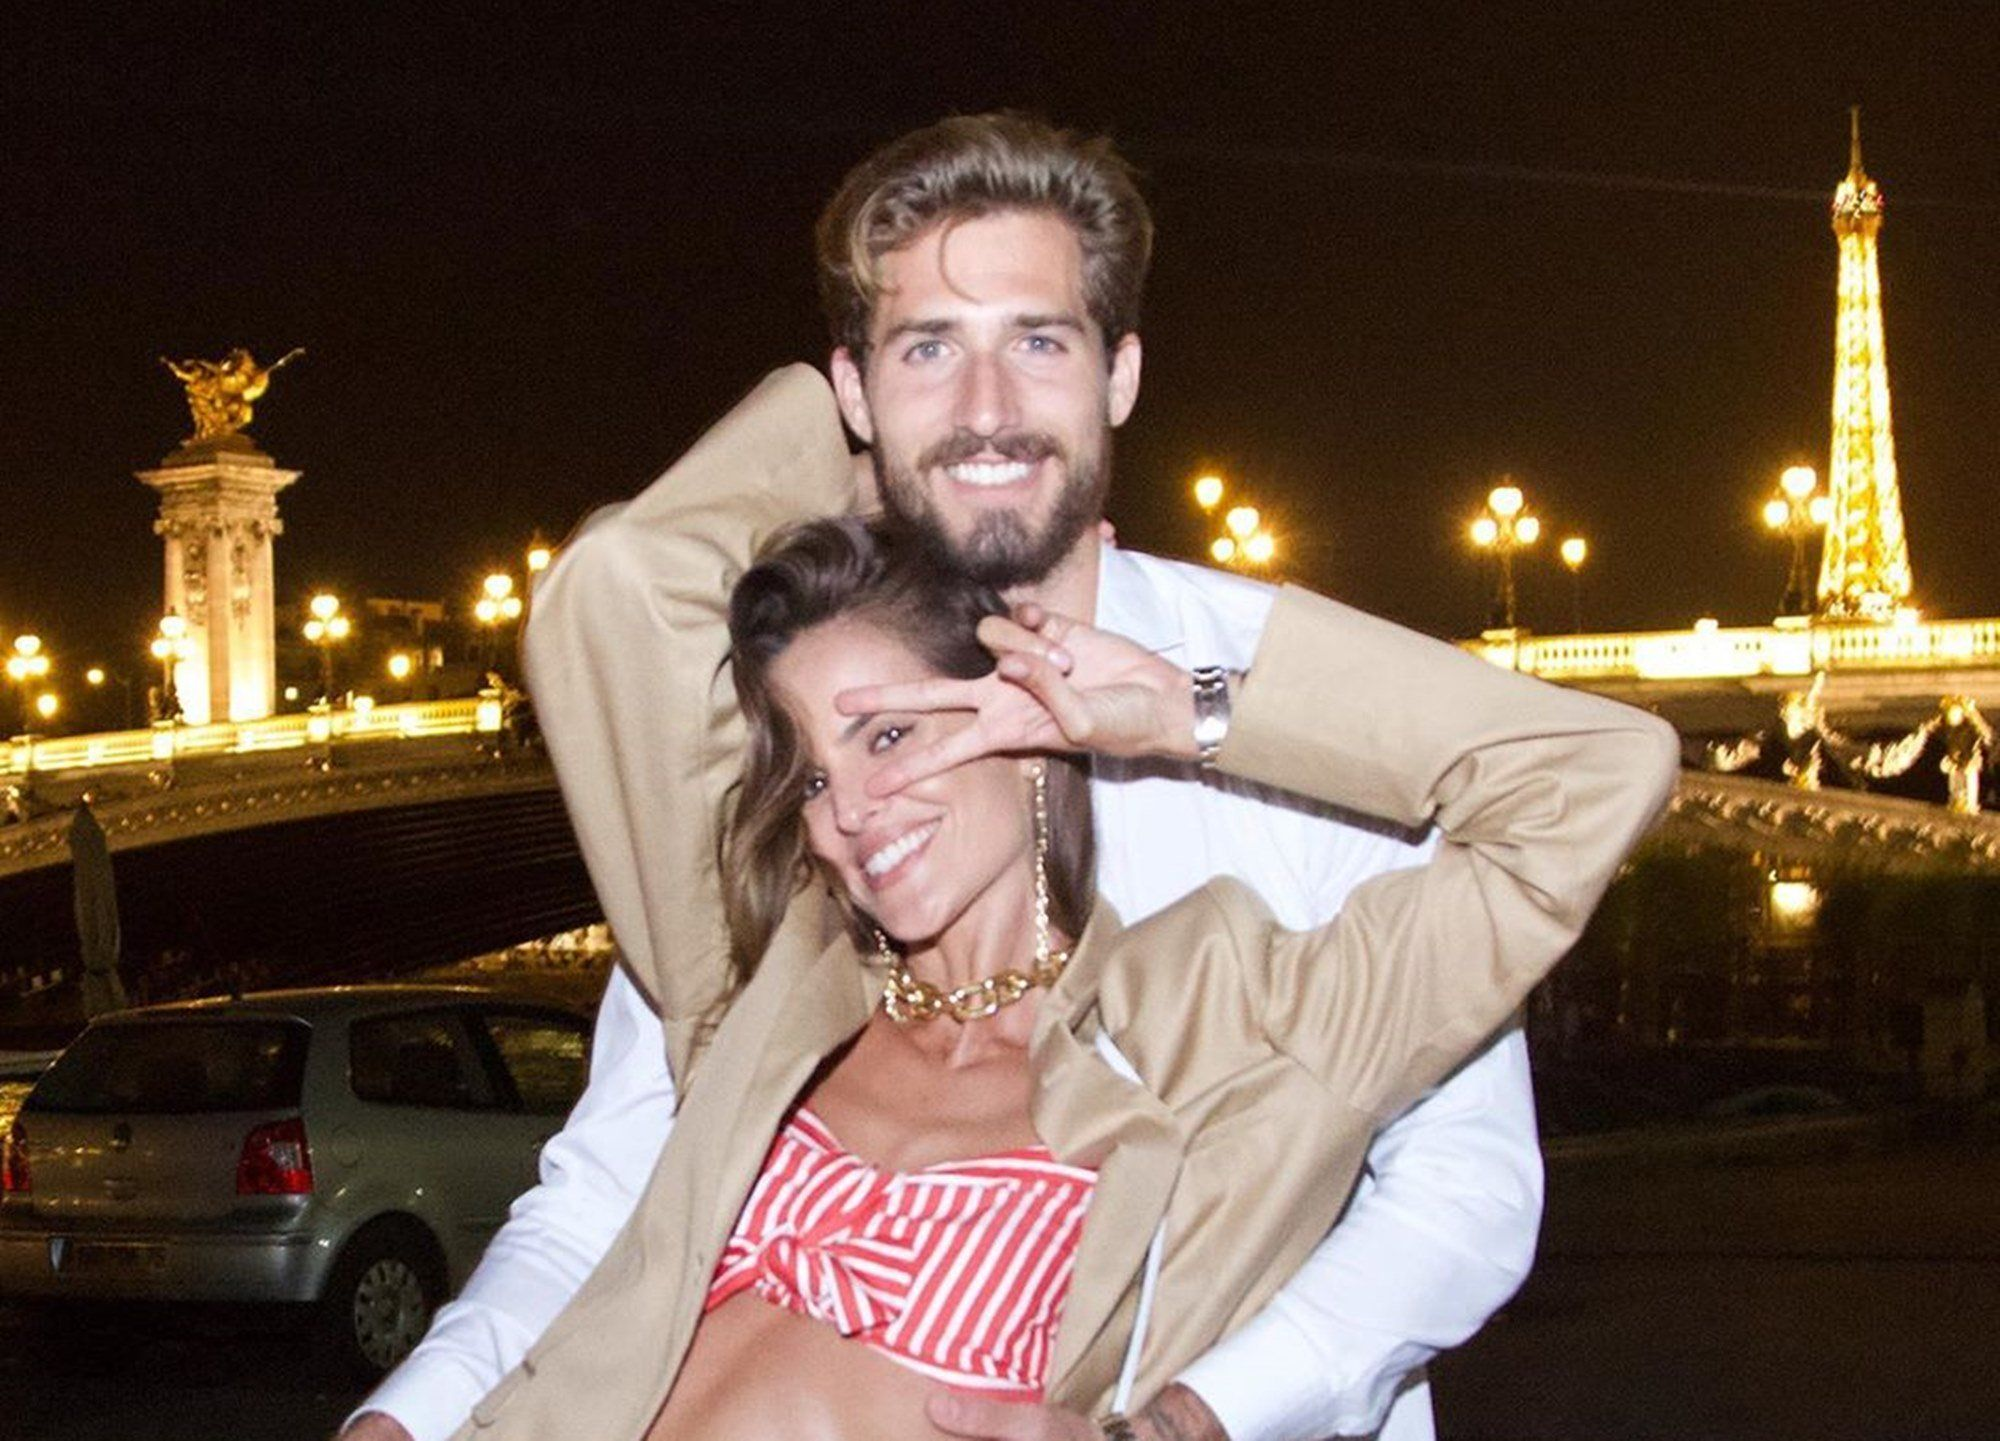 Izabel Goulart Flaunts Her Incredible Curves In New Photos As Fiancé Kevin Trapp Celebrates His Birthday In Mykonos #IzabelGoulart, #KevinTrapp celebrityinsider.org #Entertainment #celebrityinsider #celebritynews #celebrities #celebrity